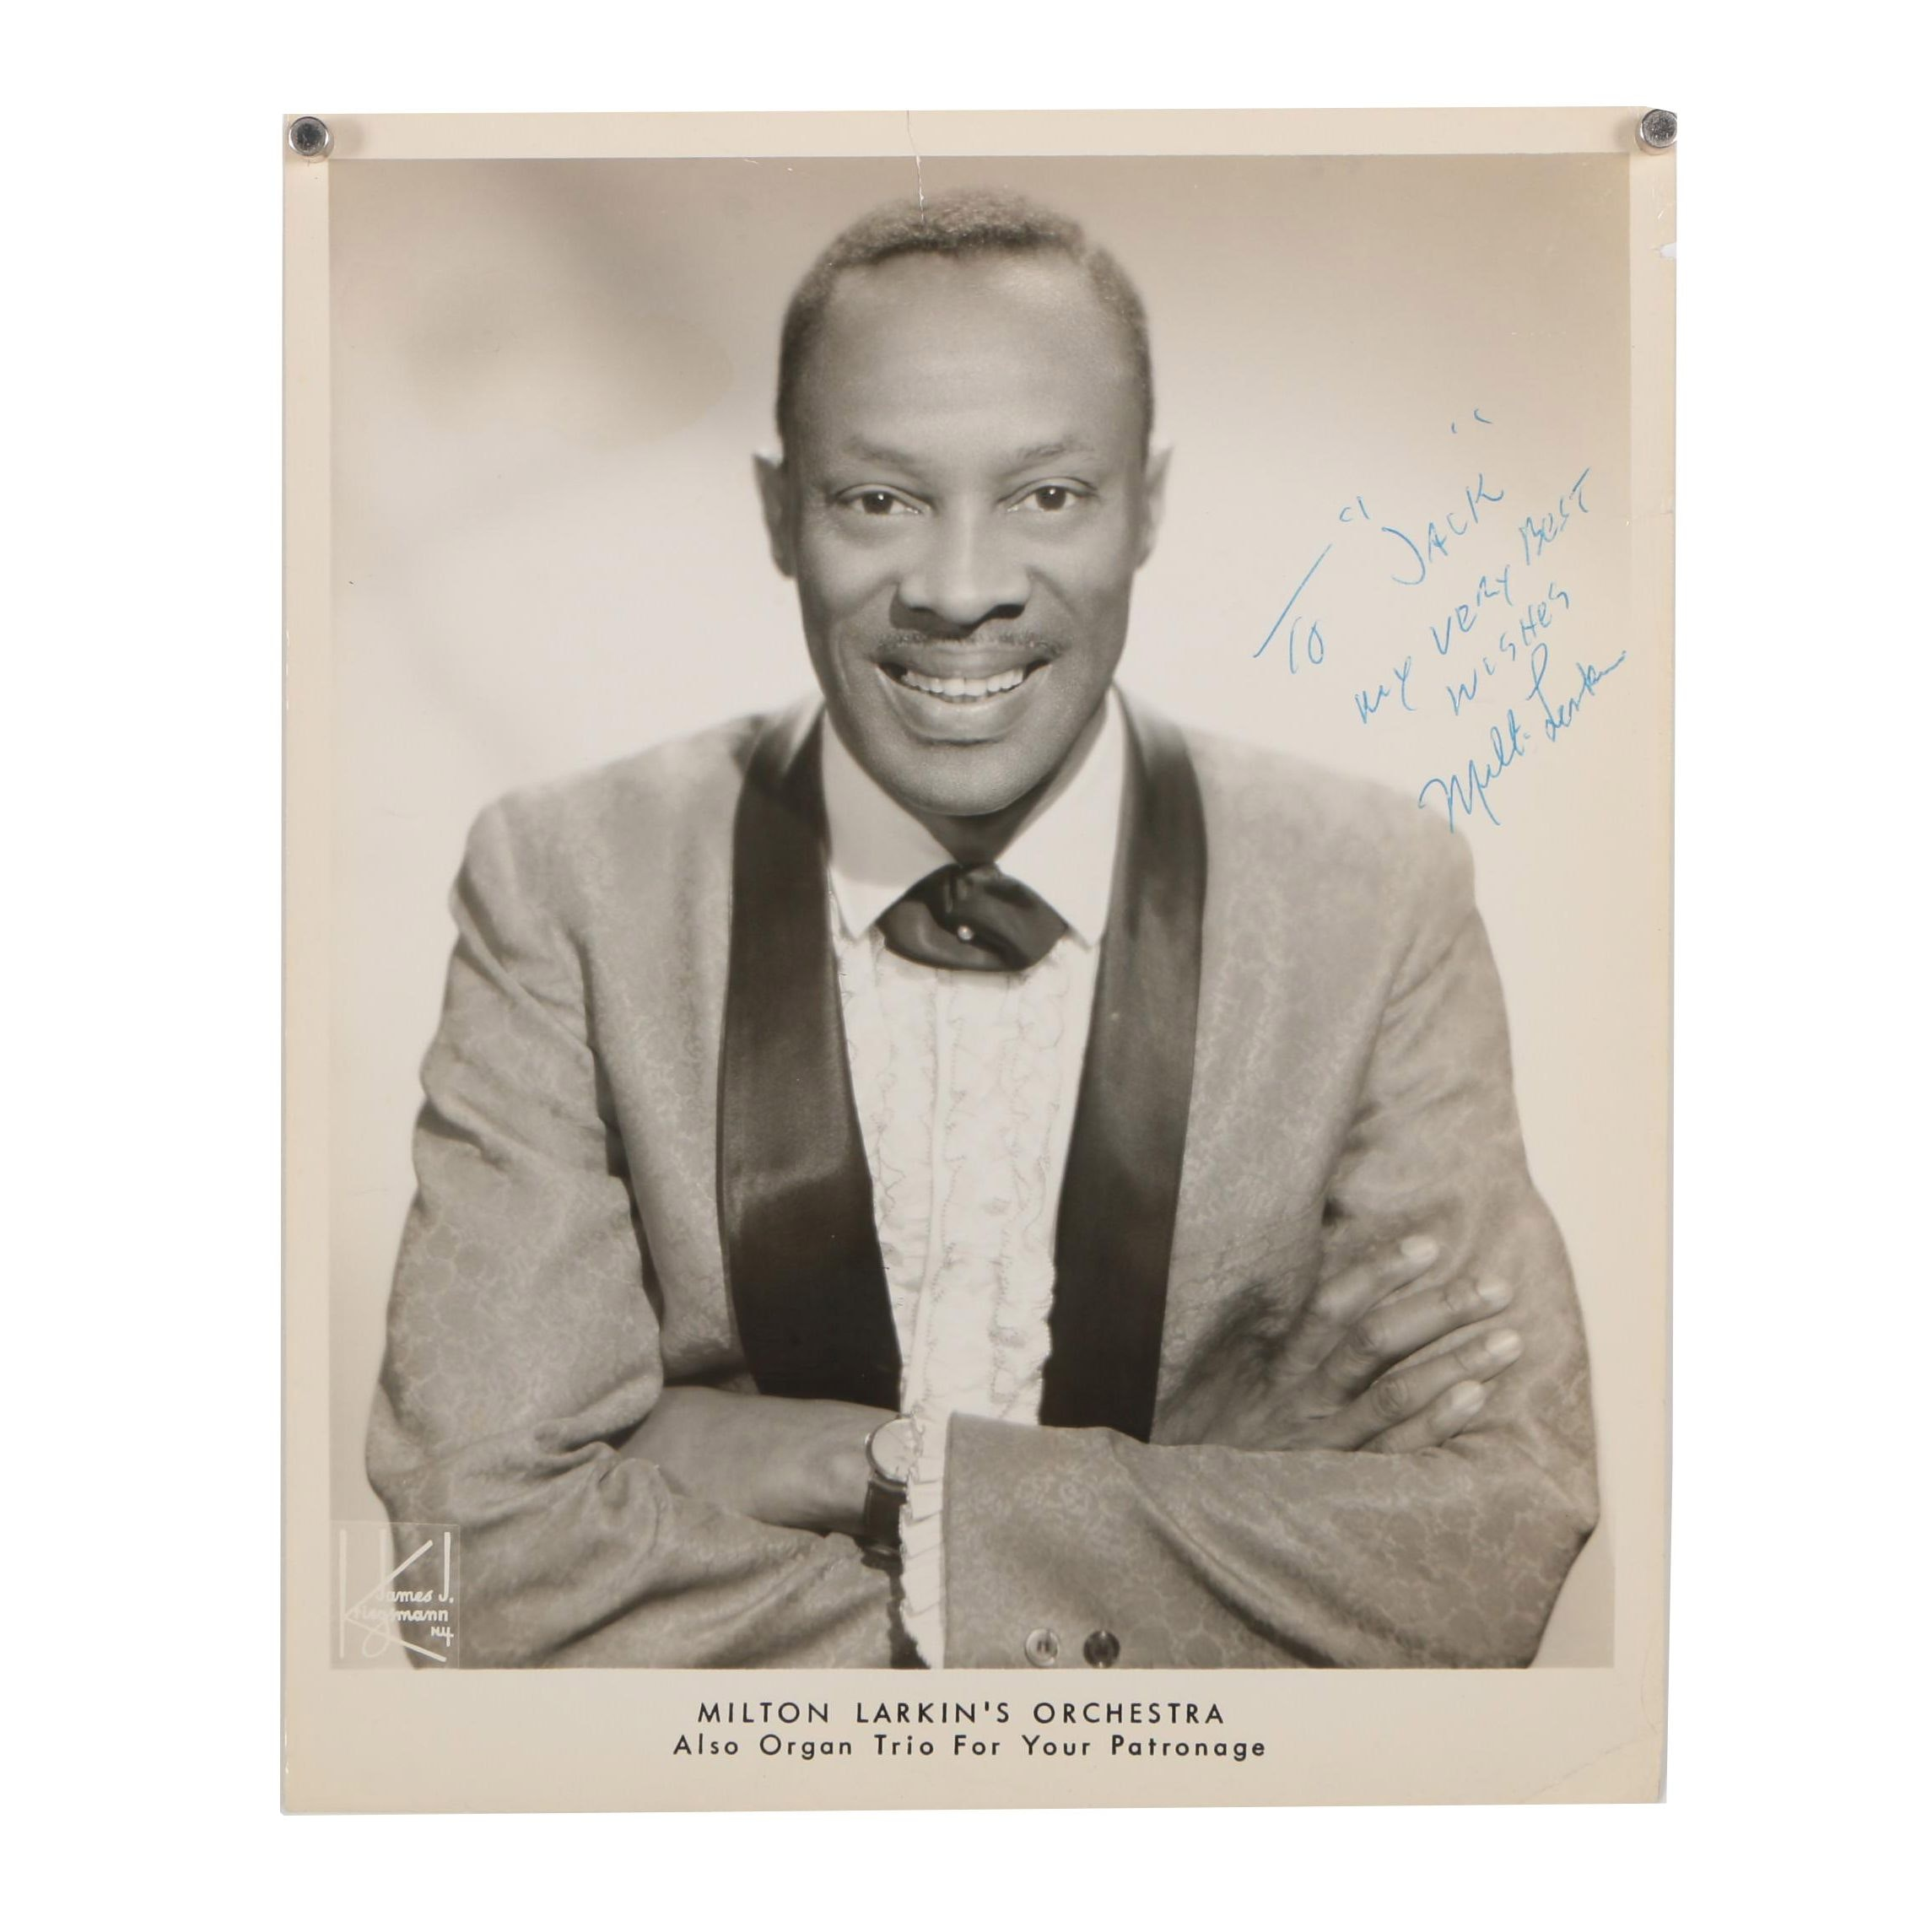 Milton Larkin Autographed Photograph from the Jack Bradley Collection